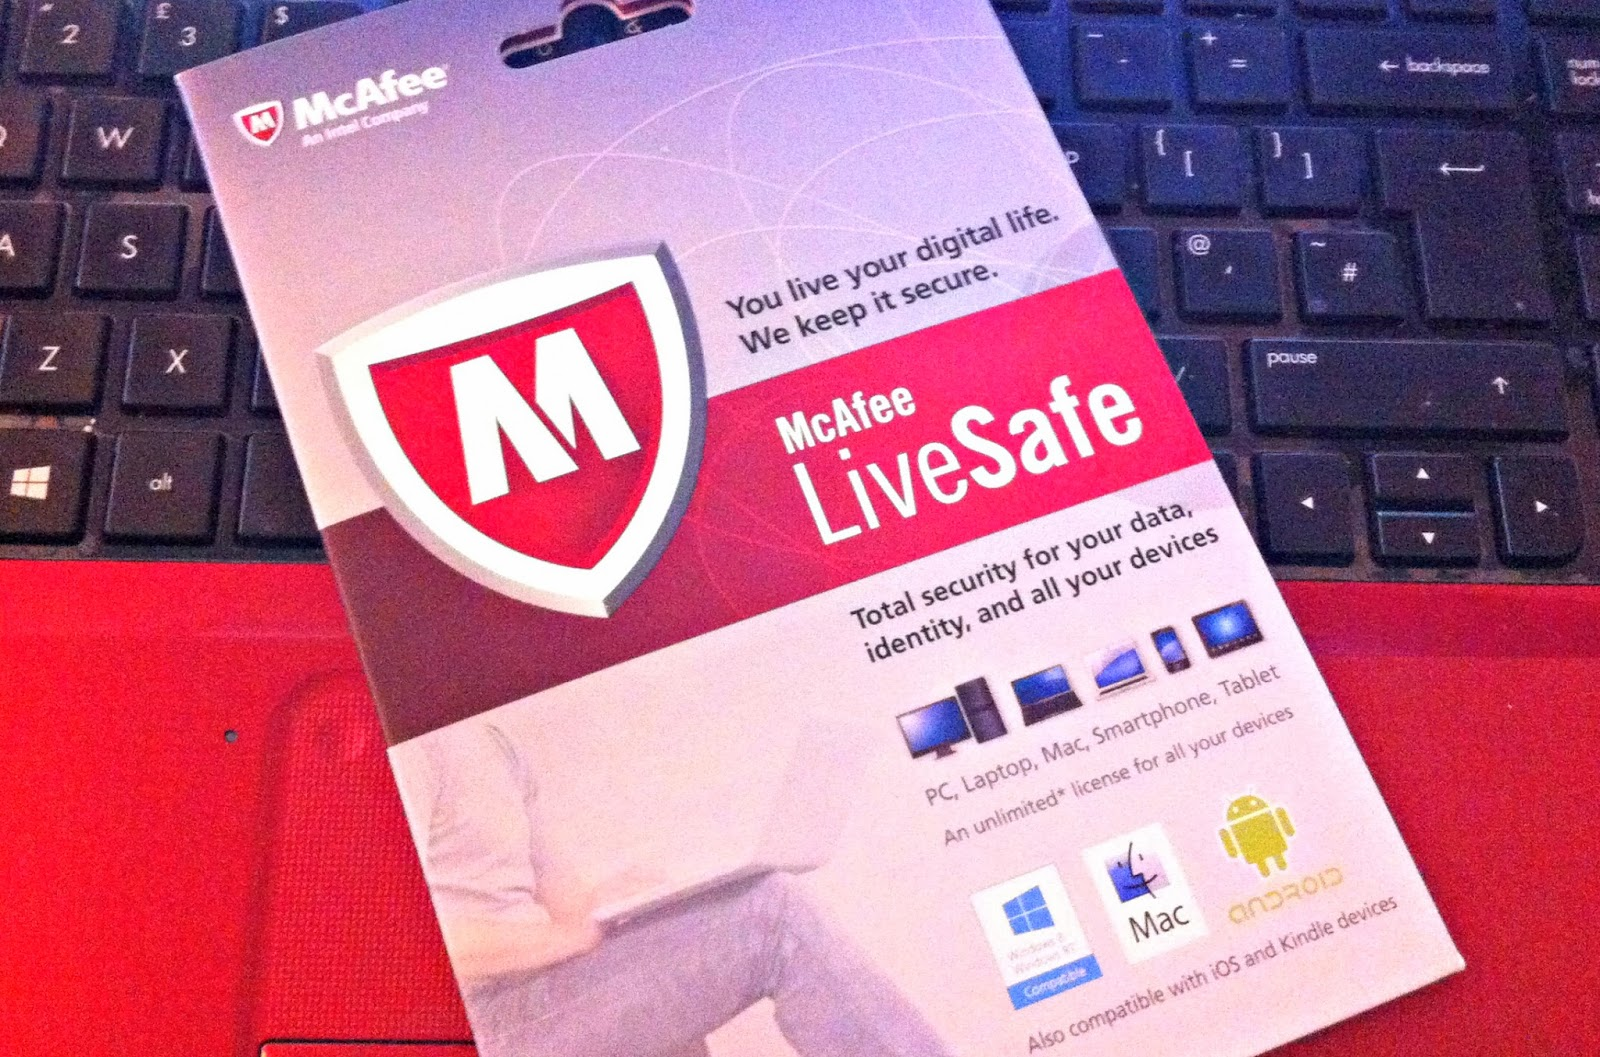 McAfee LiveSafe Review - The Ramblings of a Formerly Rock'n